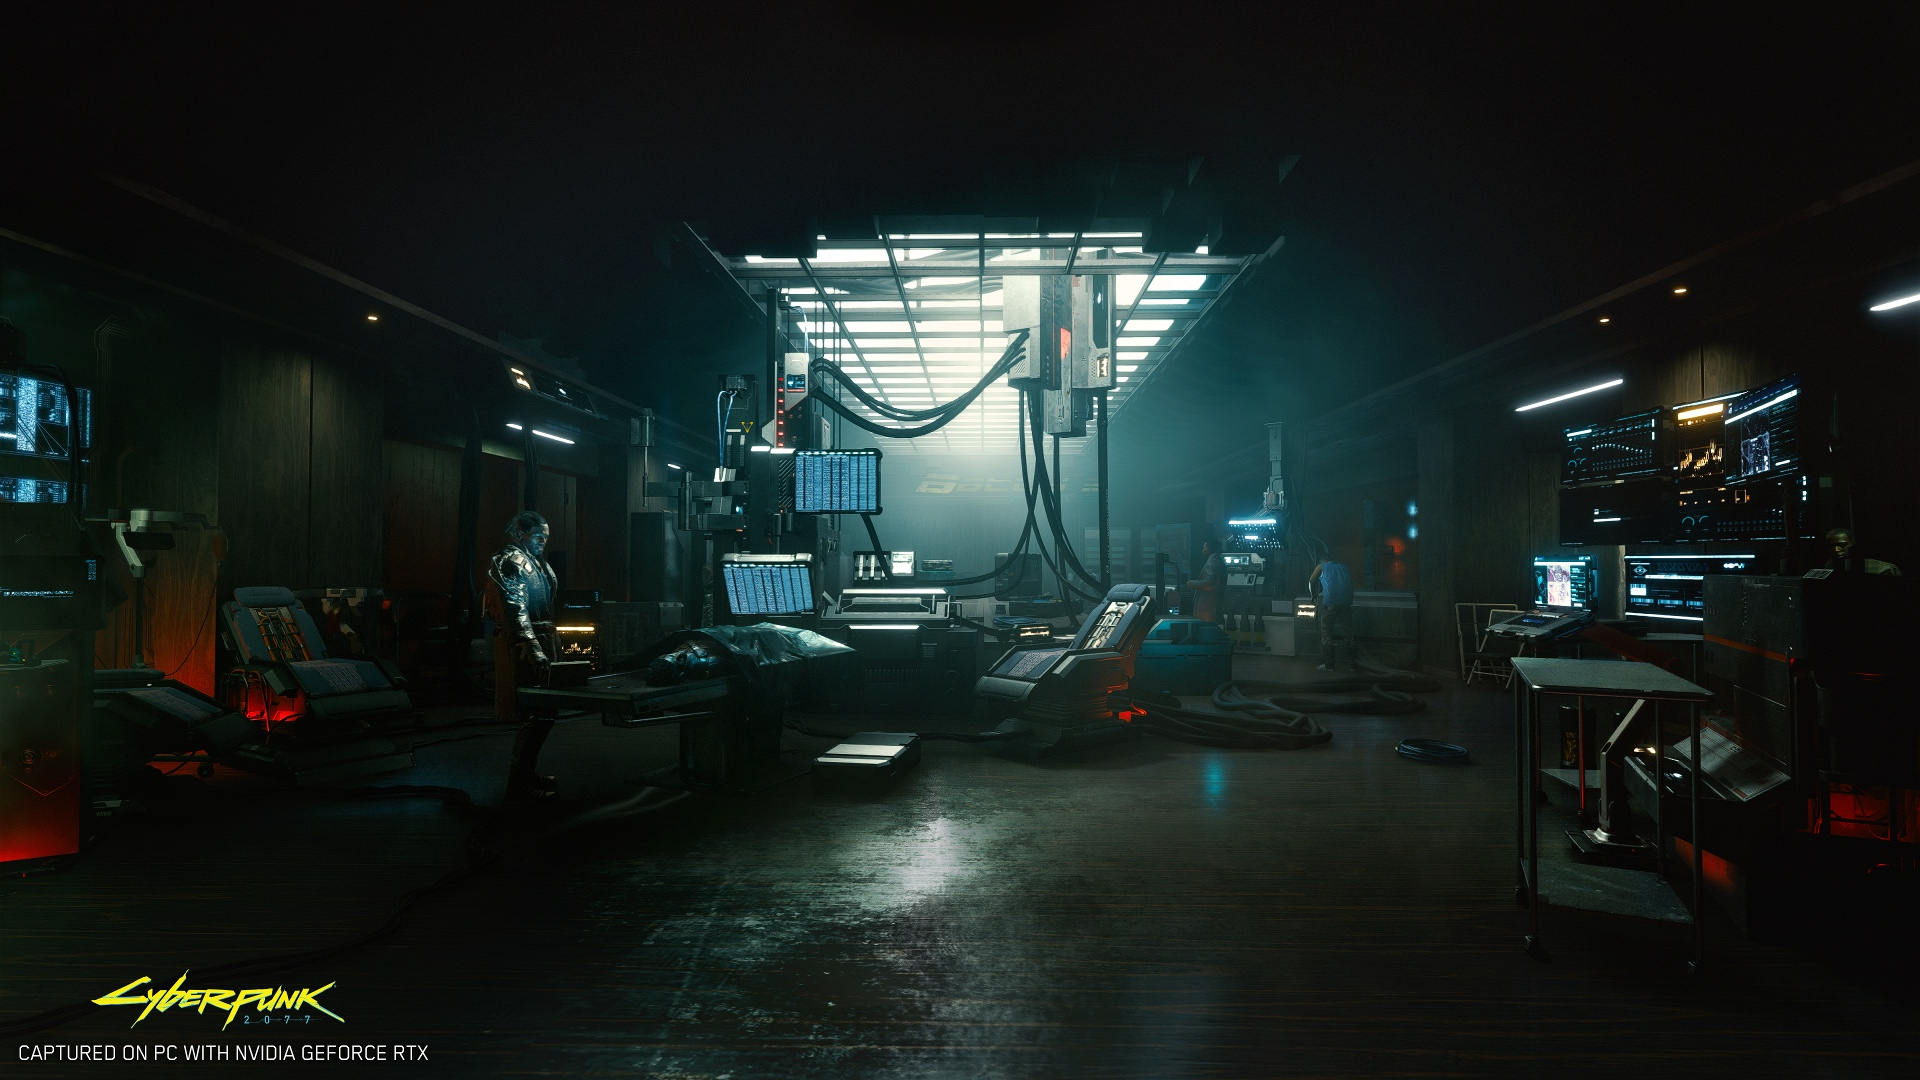 Cyberpunk 2077 Subway Map.Cyberpunk 2077 13 Big Things We Learned About The Upcoming Rpg